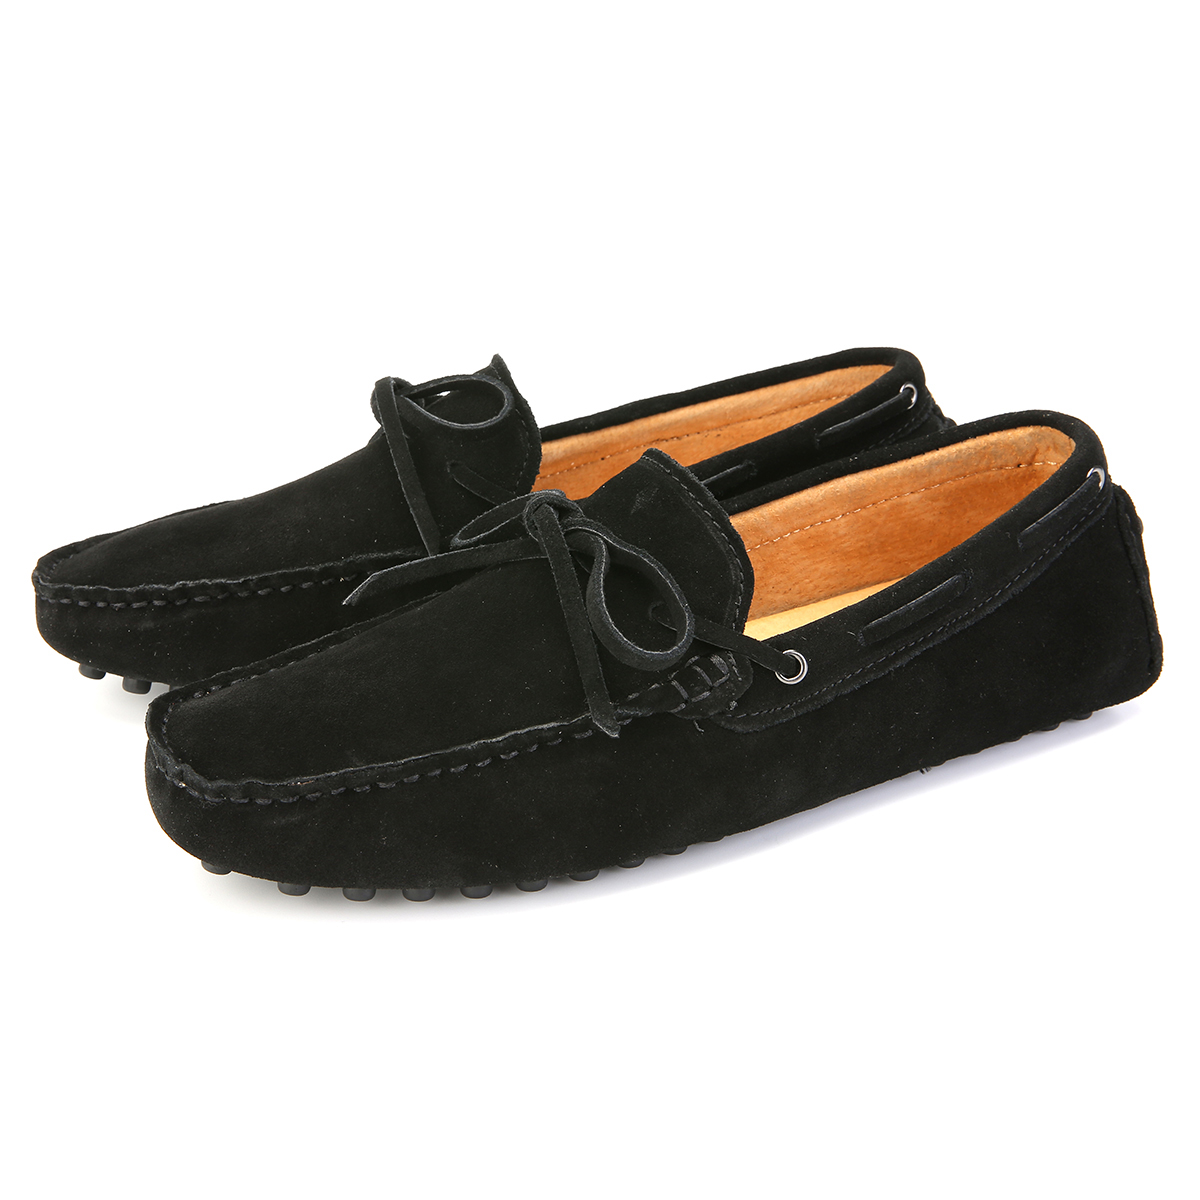 women comforter black cfm leather beautiful low comfortable shoes flats